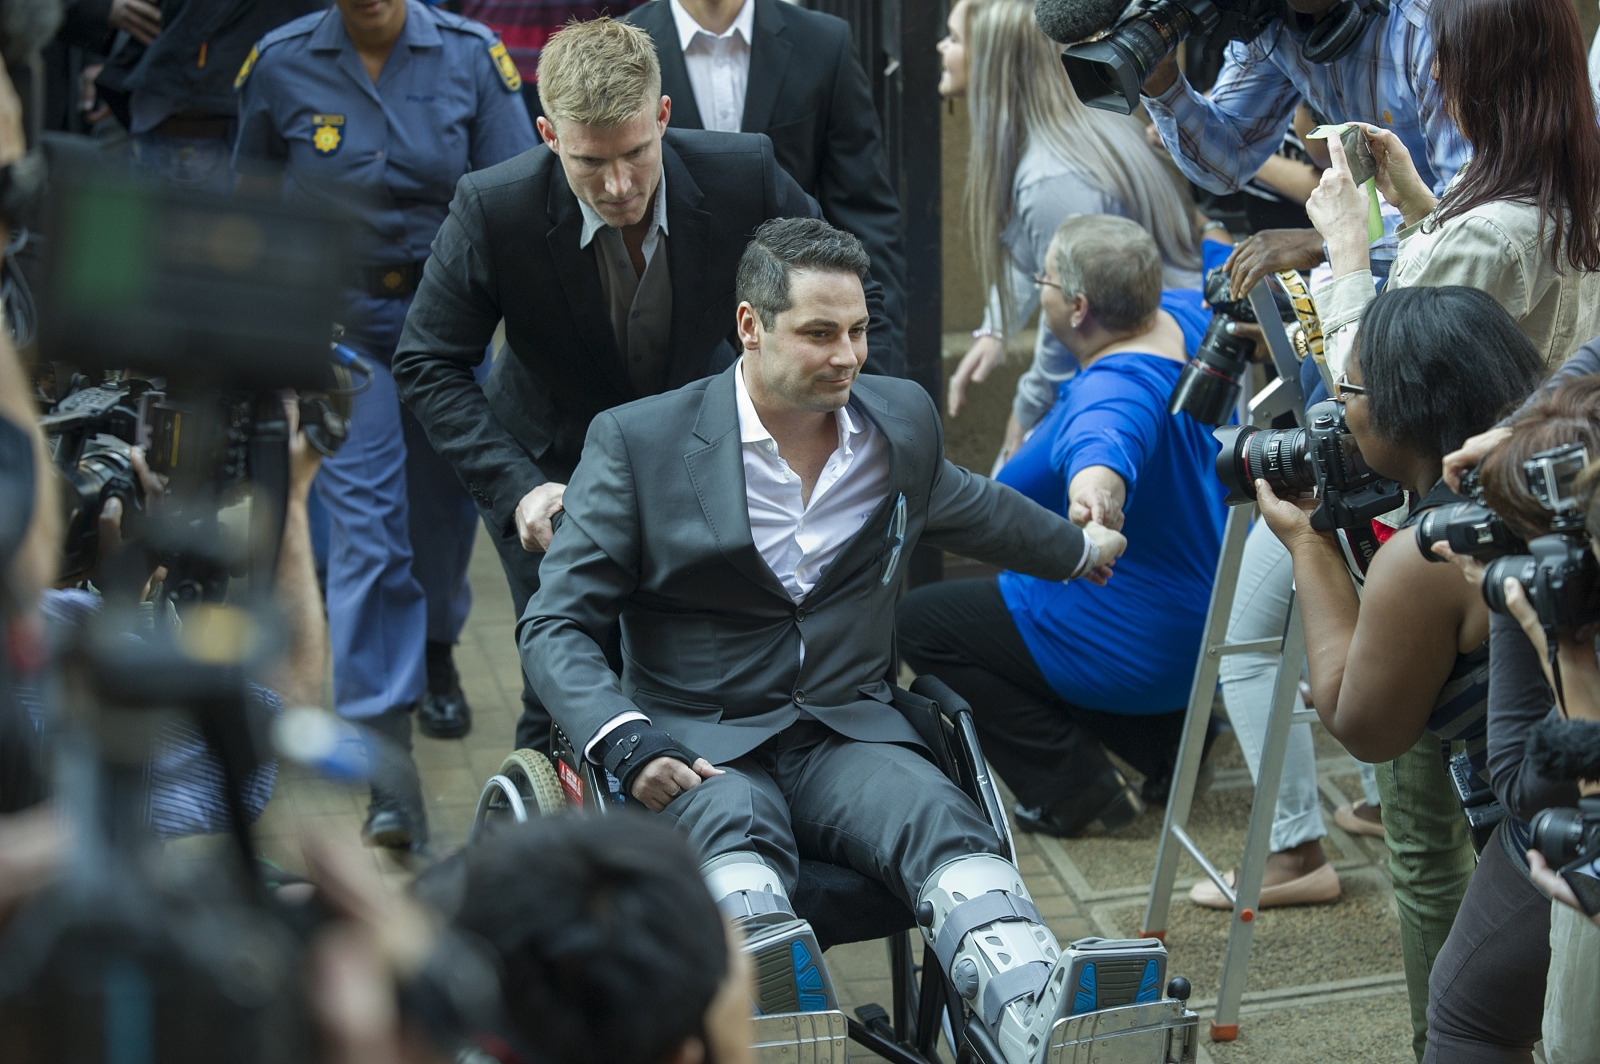 Carl Pistorius, the brother of Oscar, arrives at court in a wheelchair